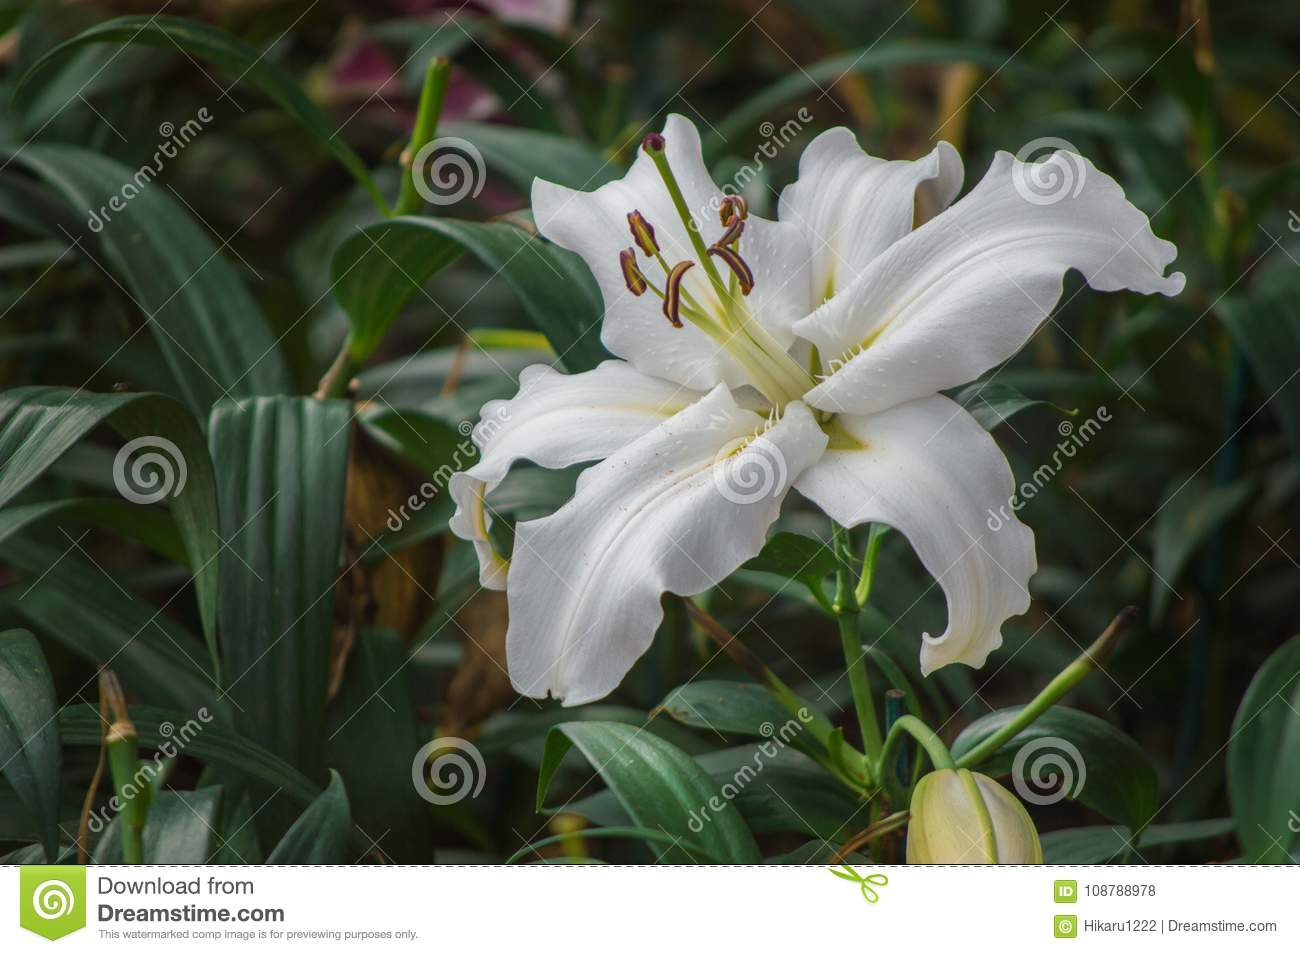 Lily Flower Are Blooming In The Garden Stock Photo Image Of Bloom